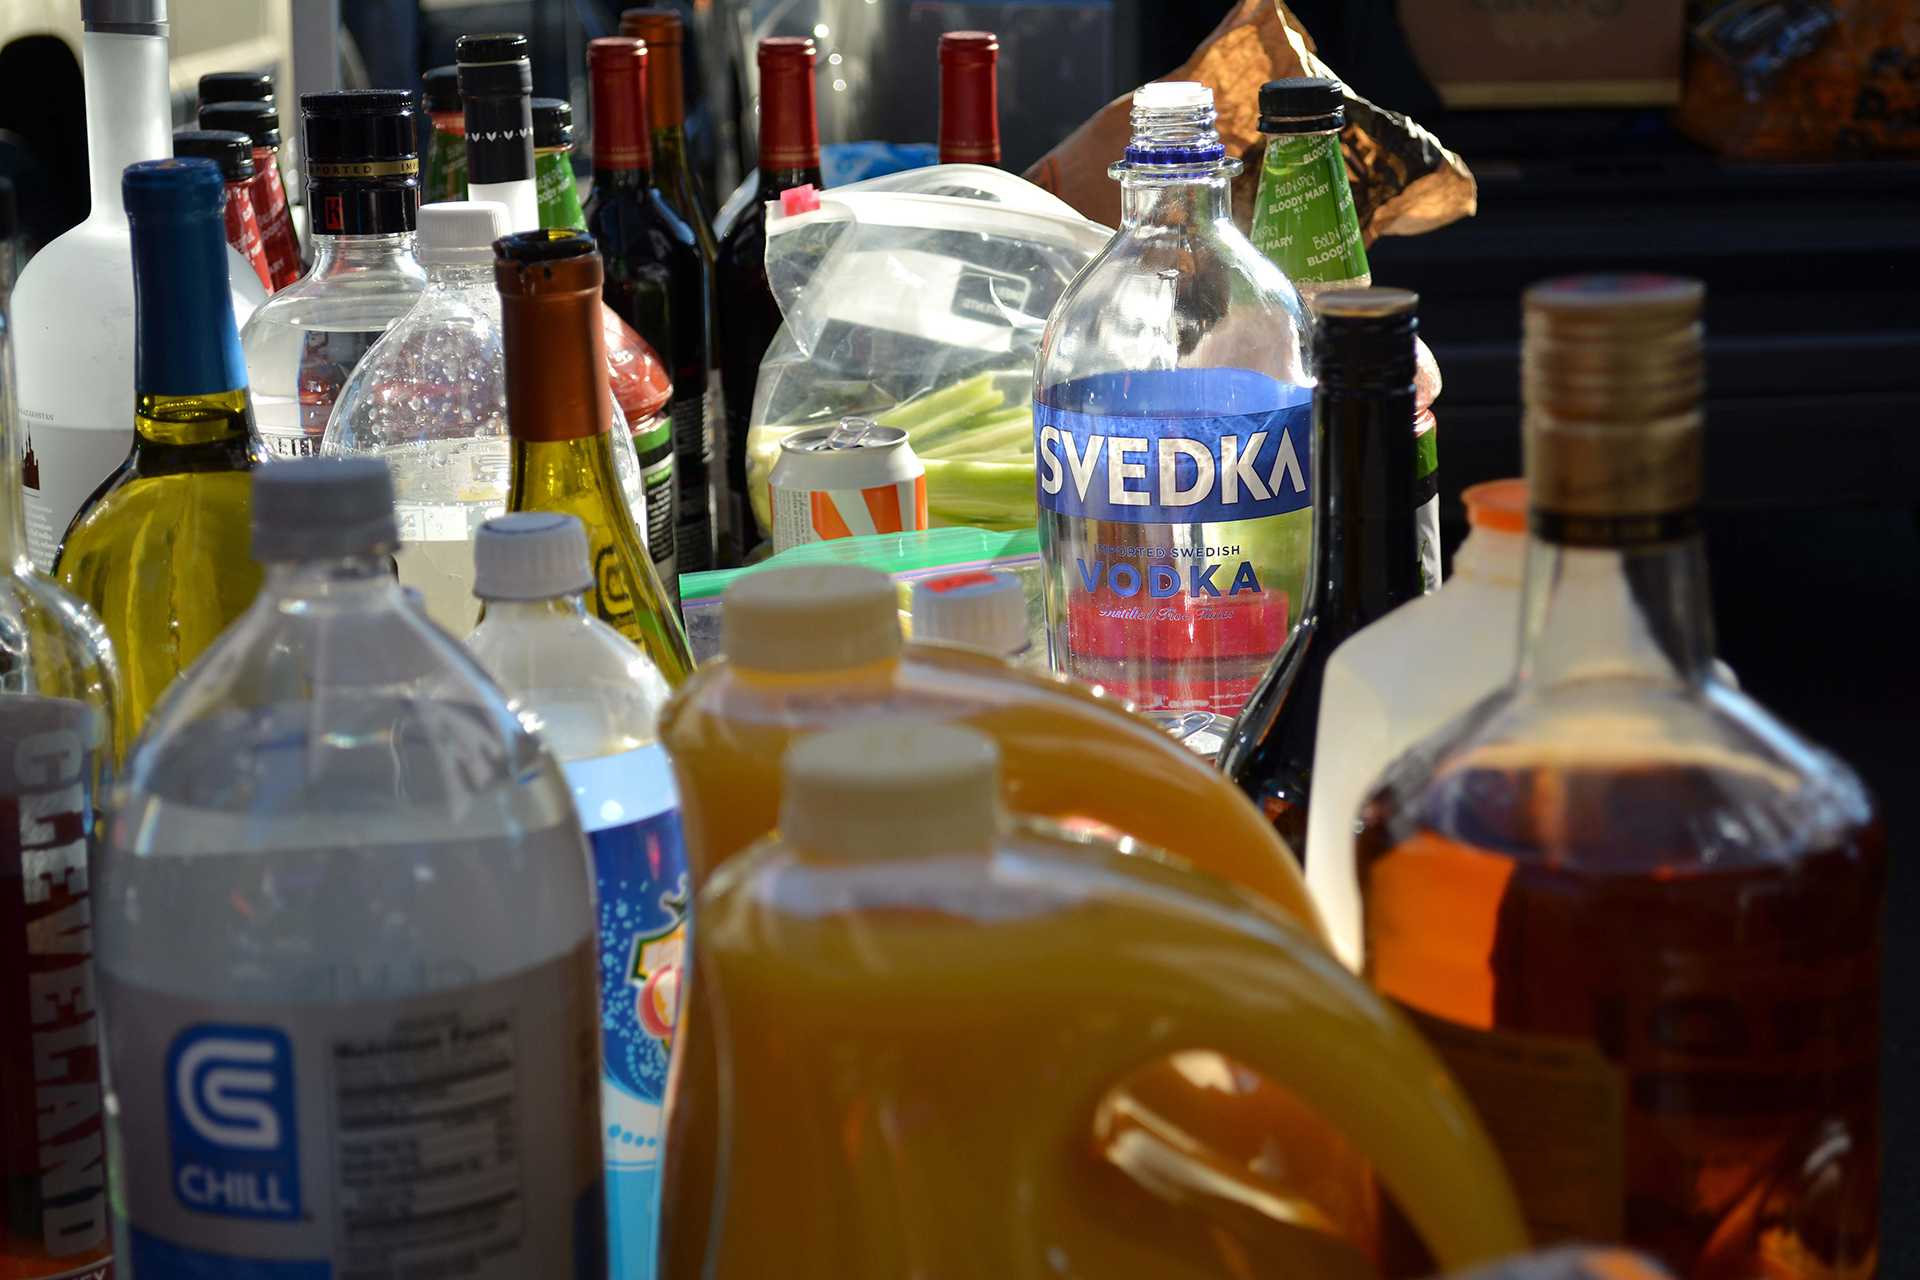 Recent data shows high-risk drinking more common in UI community